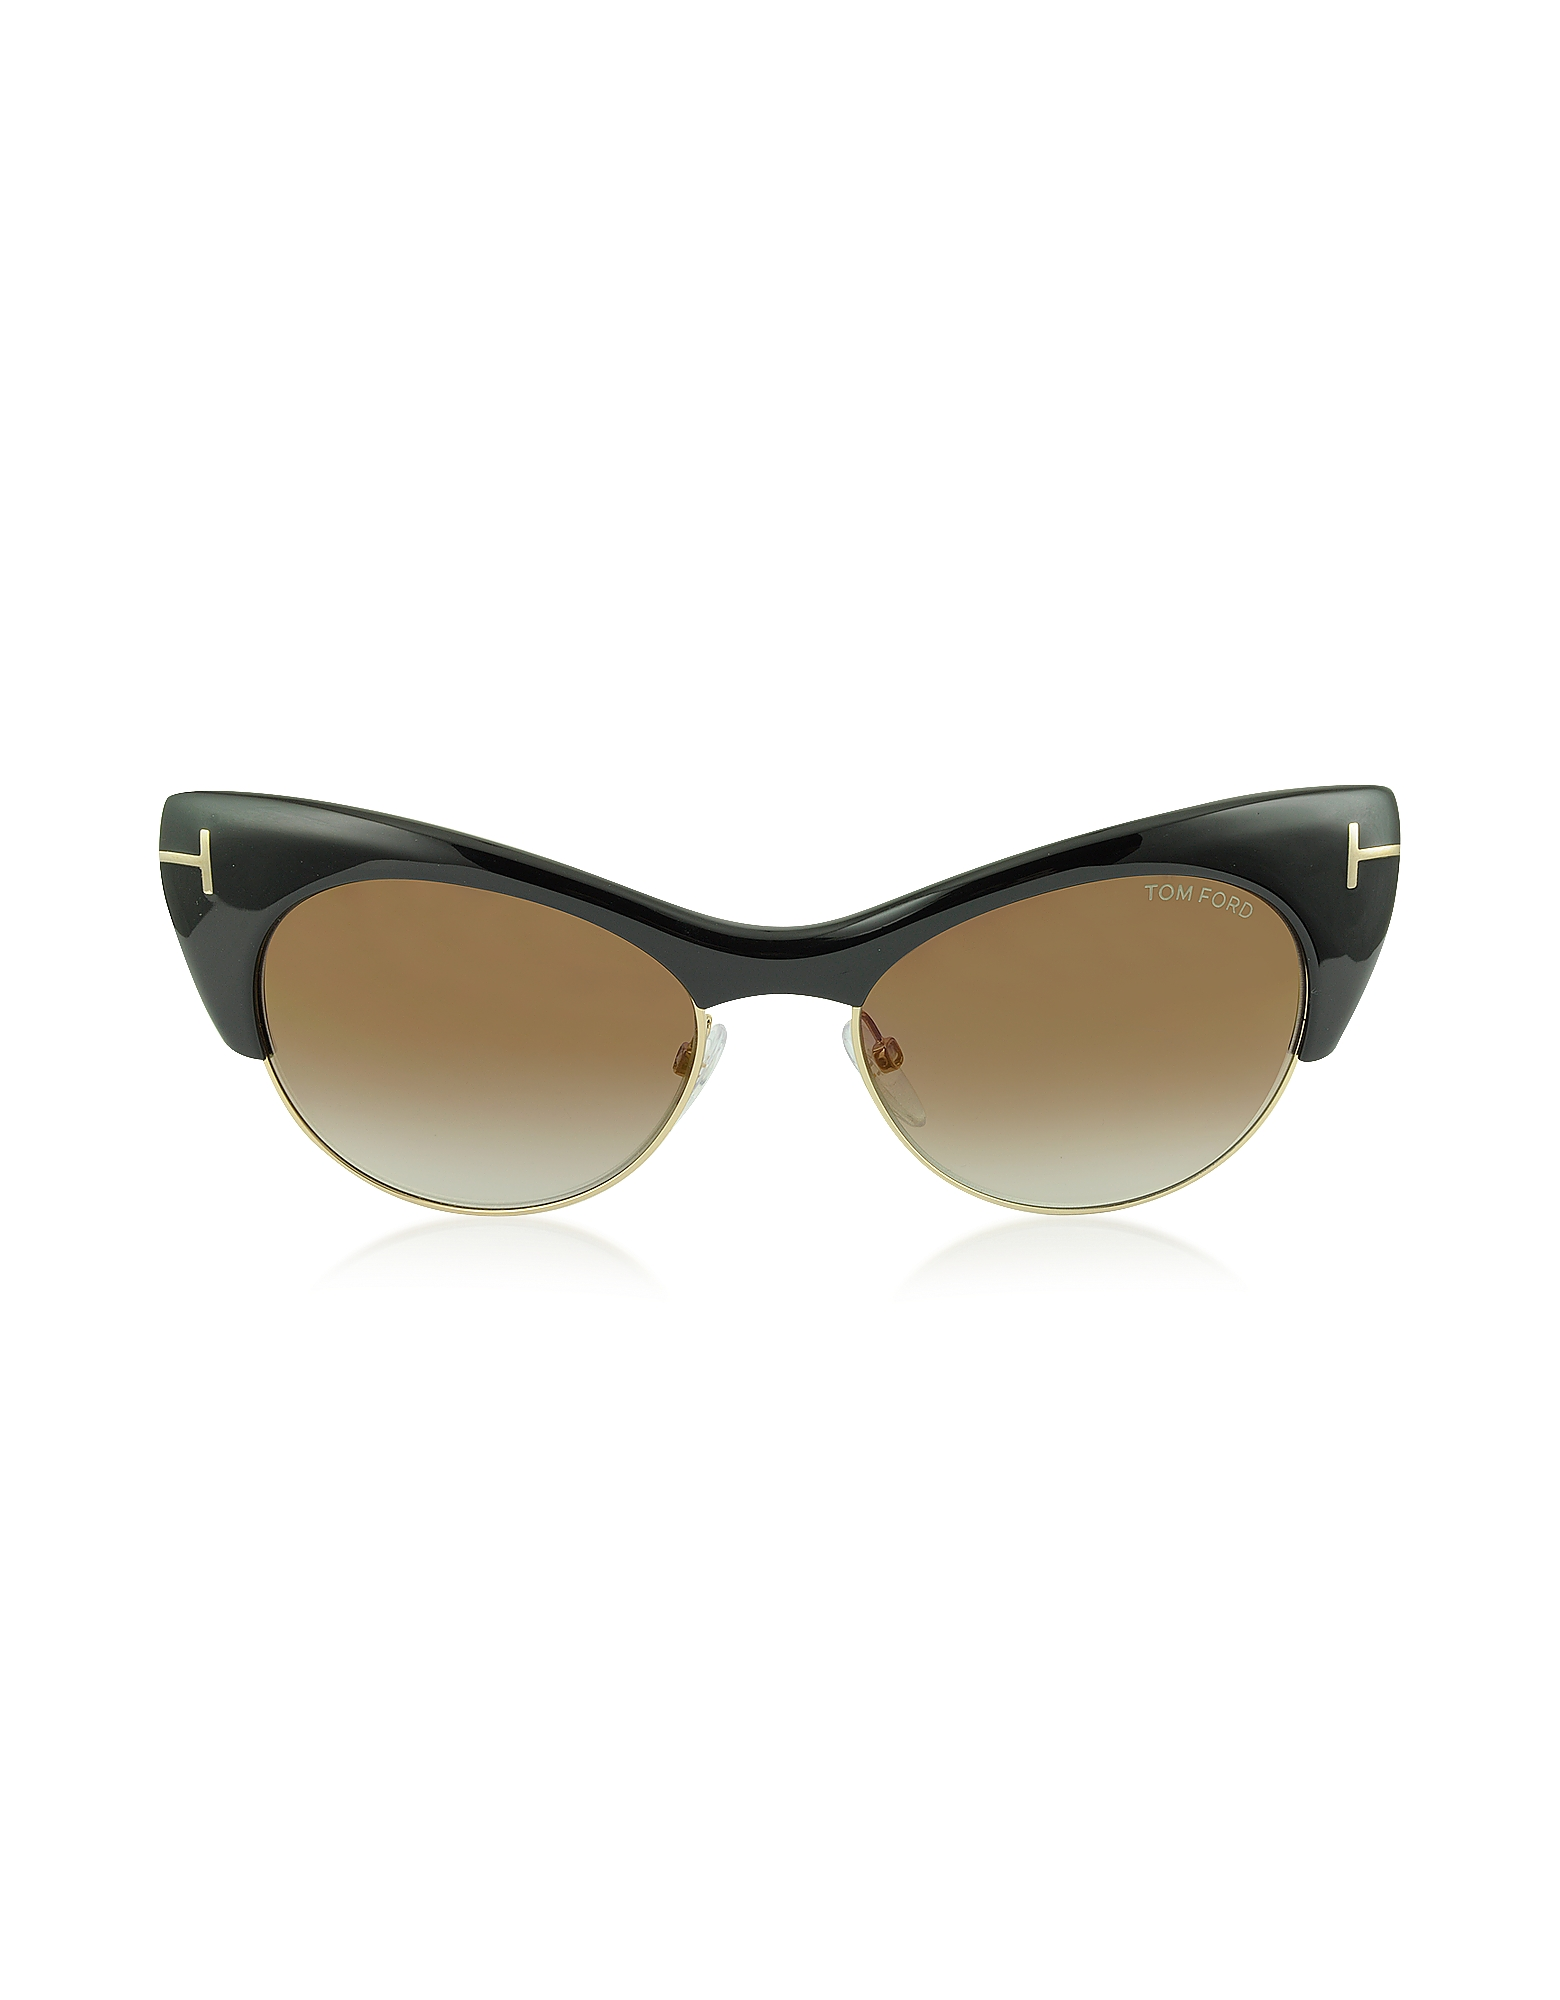 LOLA FT0387 01G Black Cat Eye Sunglasses